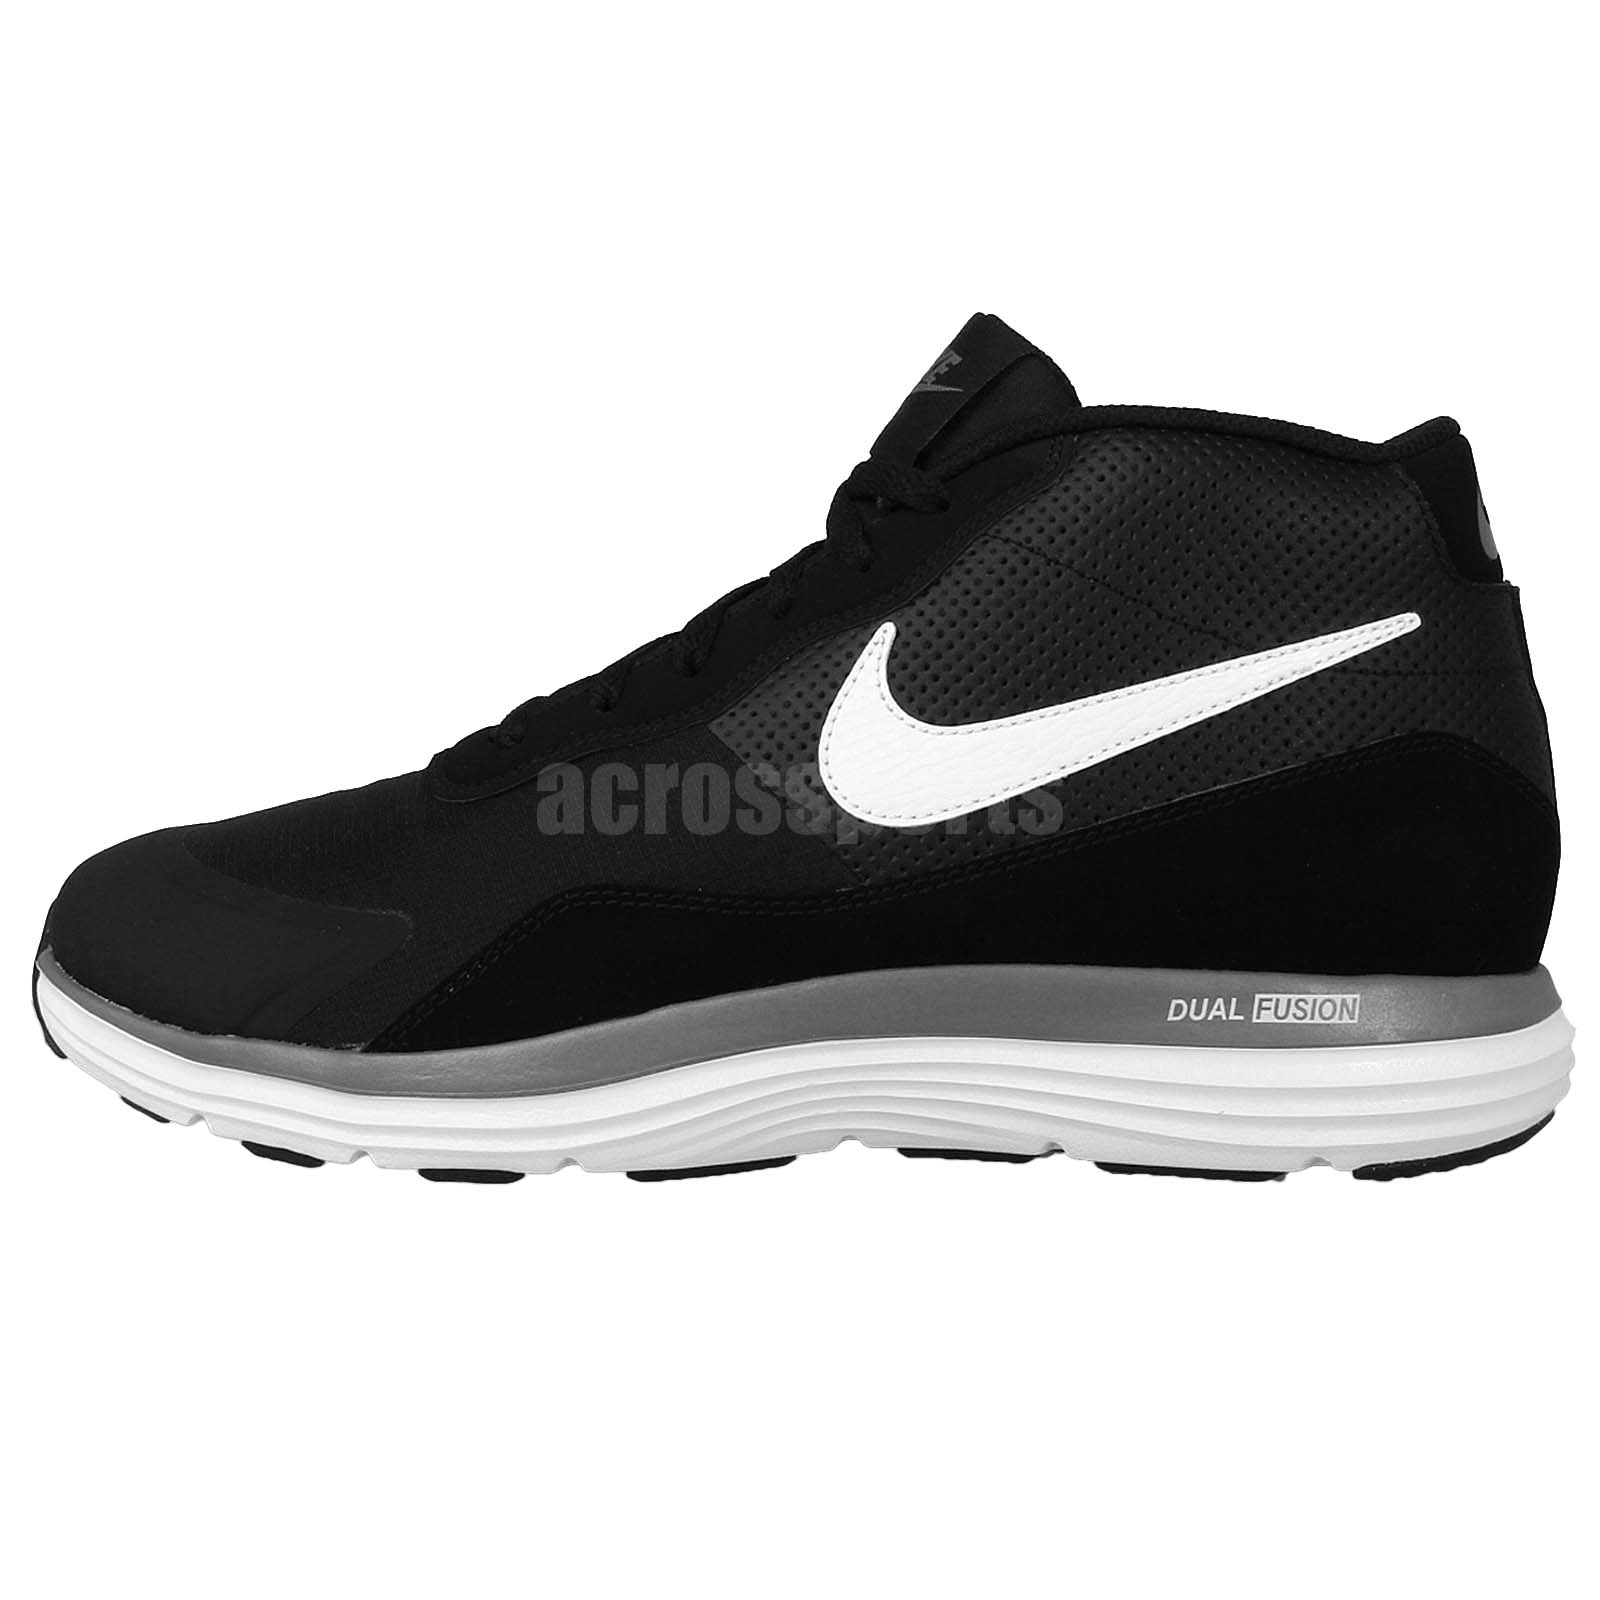 nike weed shoes for sale on ebay amazon shipping d03c676e0